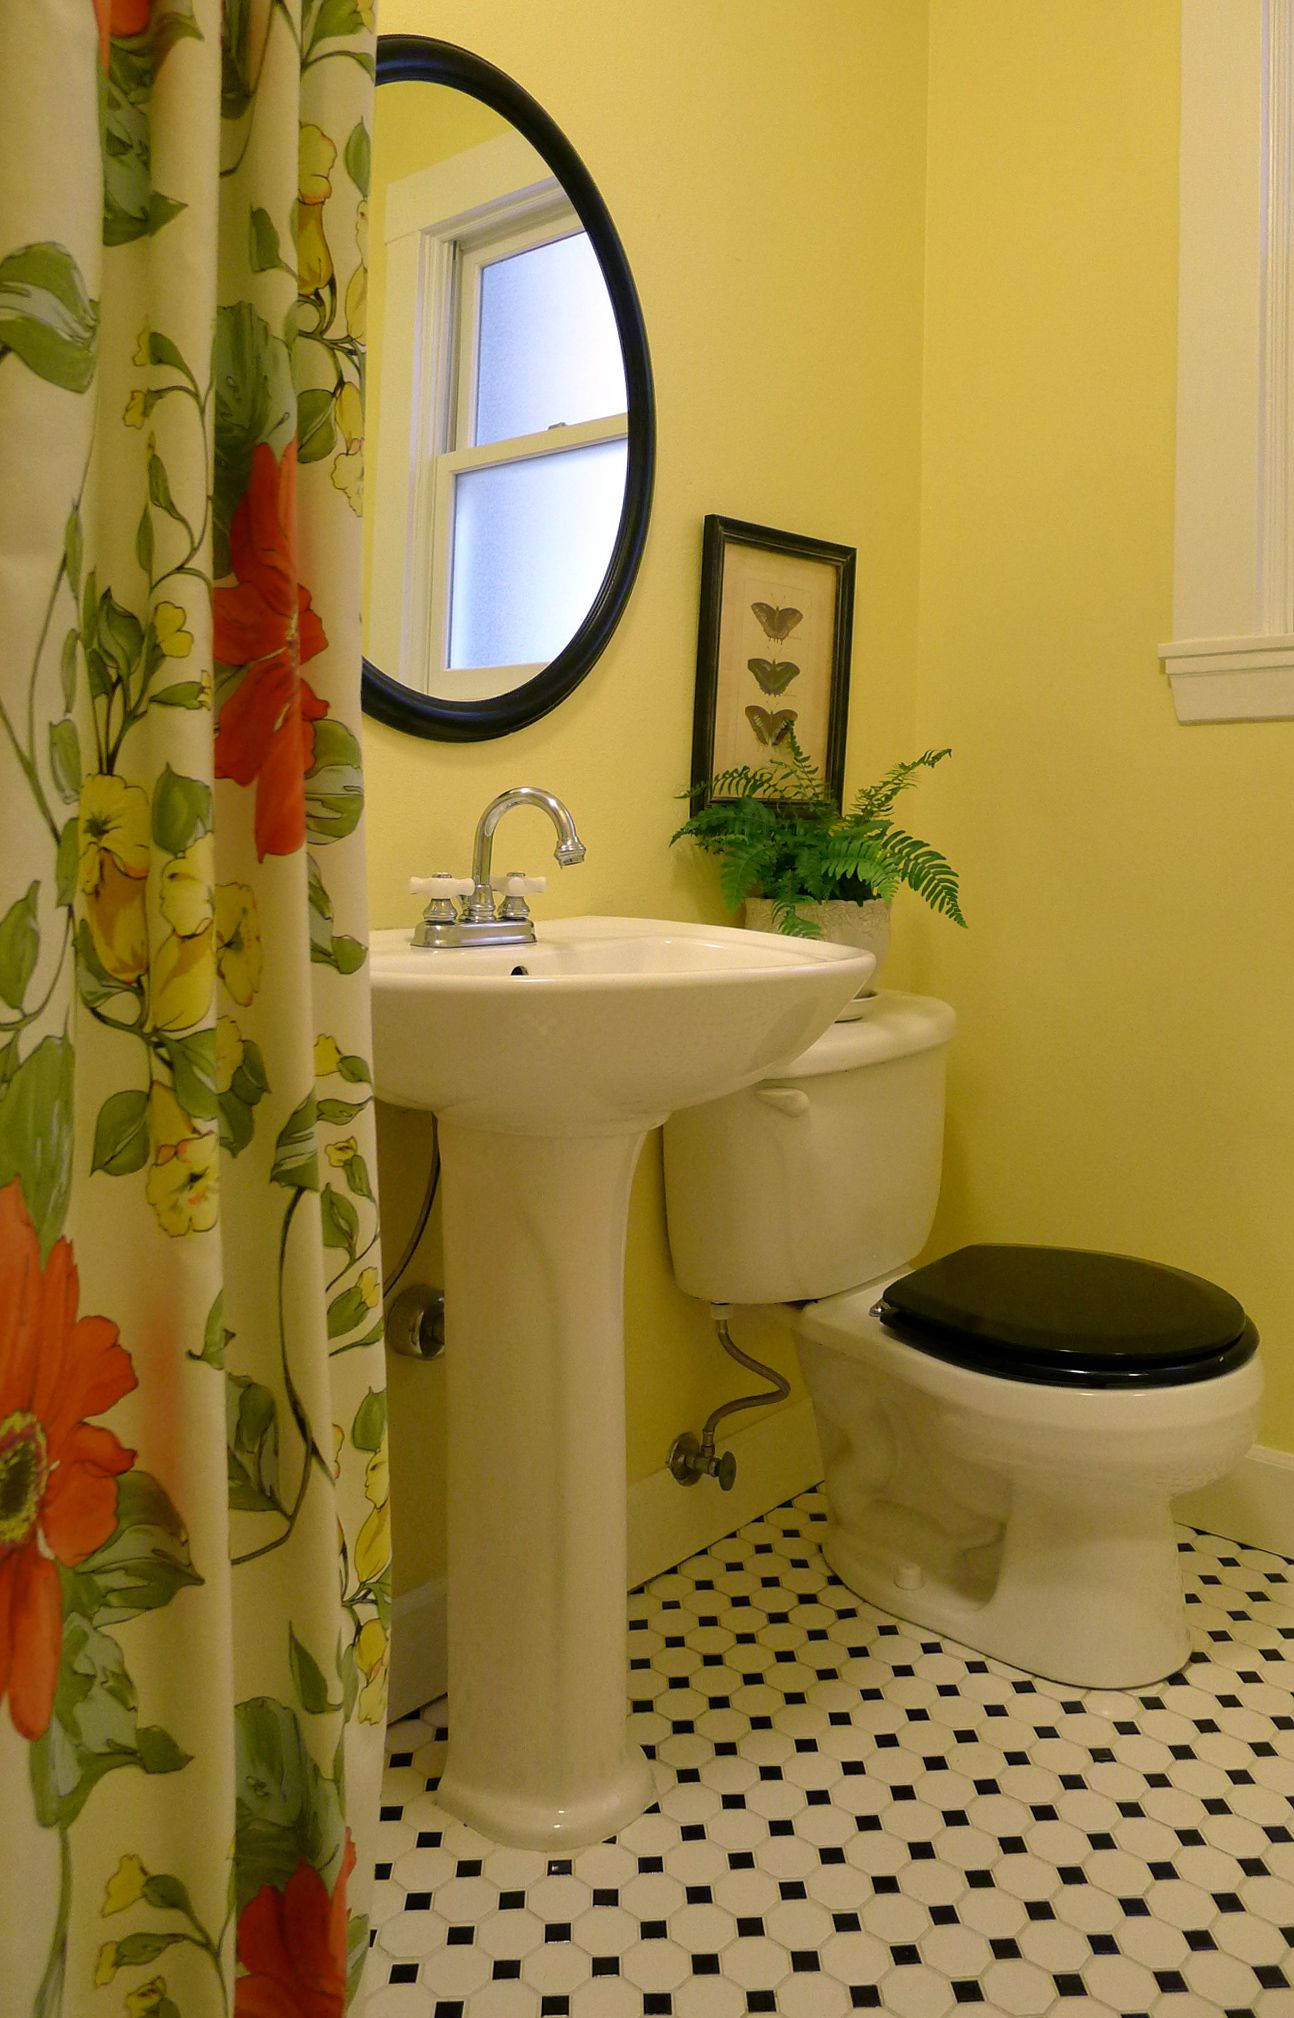 yellow, black, white bathroom | Bathrooms with charm~ | Pinterest ...